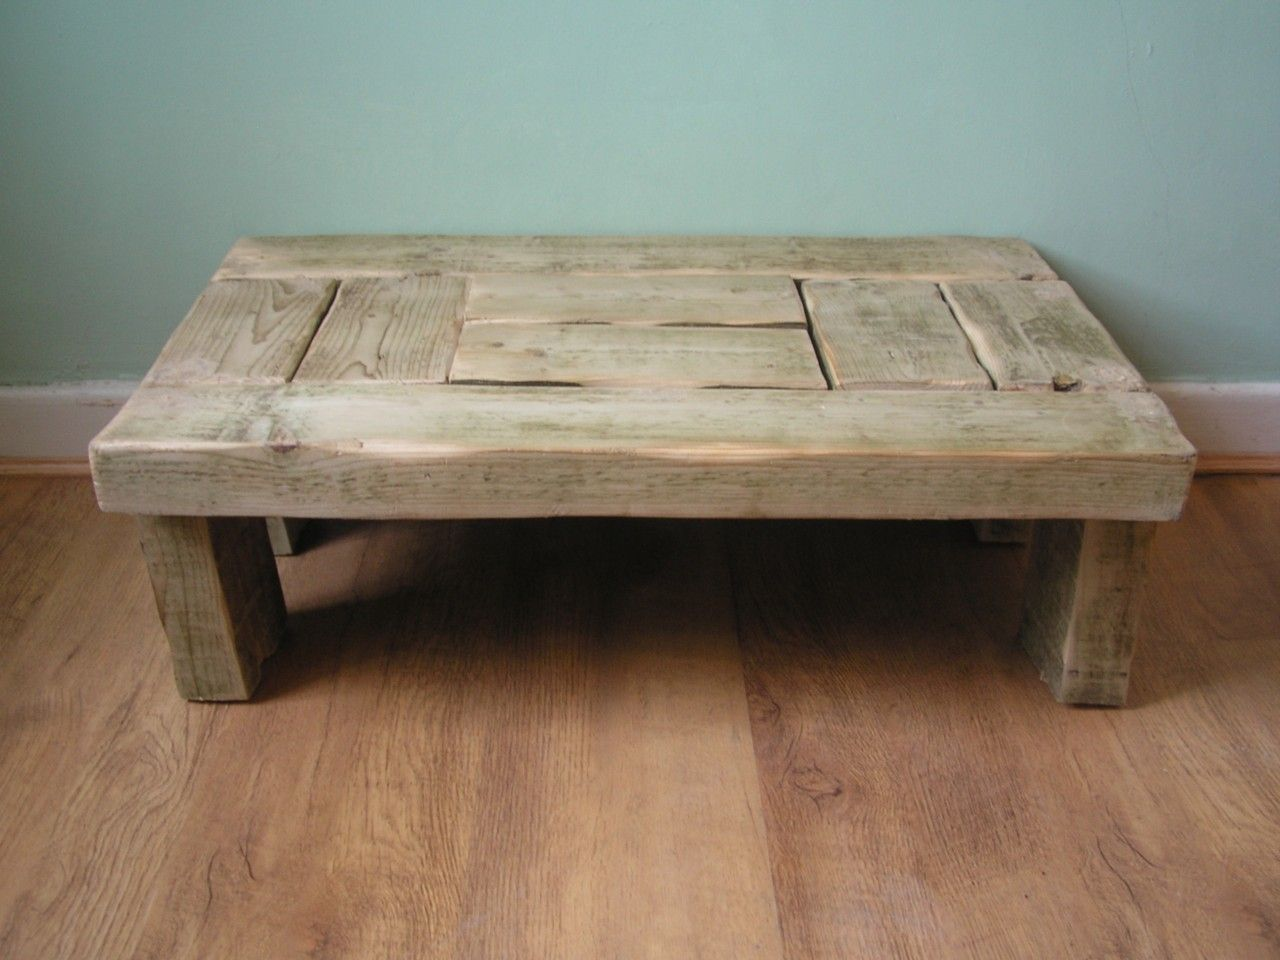 Irish Handcrafted Driftwood Tables Made To Measure From Ireland Free Post Uk Ebay Driftwood Table Driftwood Furniture Table